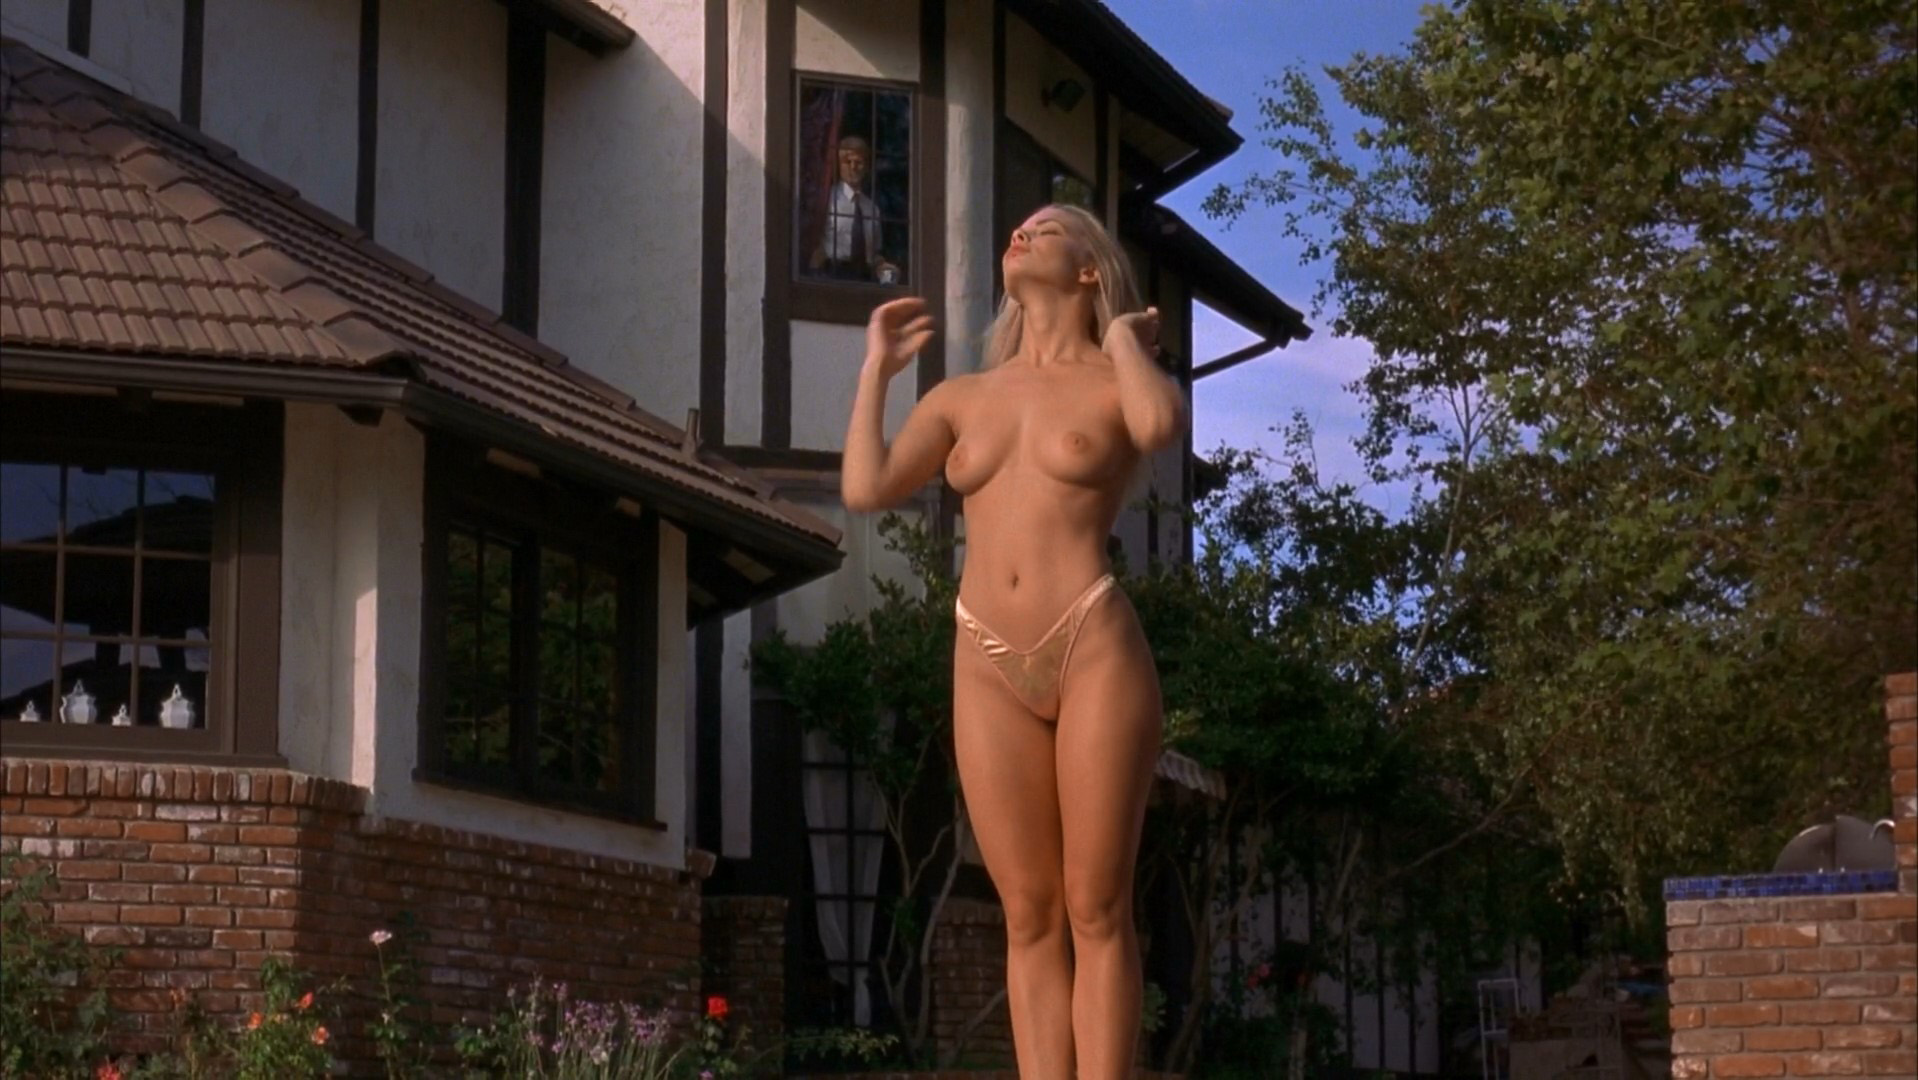 jaime-pressly-poison-ivy-sex-hot-bhabi-images-of-fucking-by-african-man